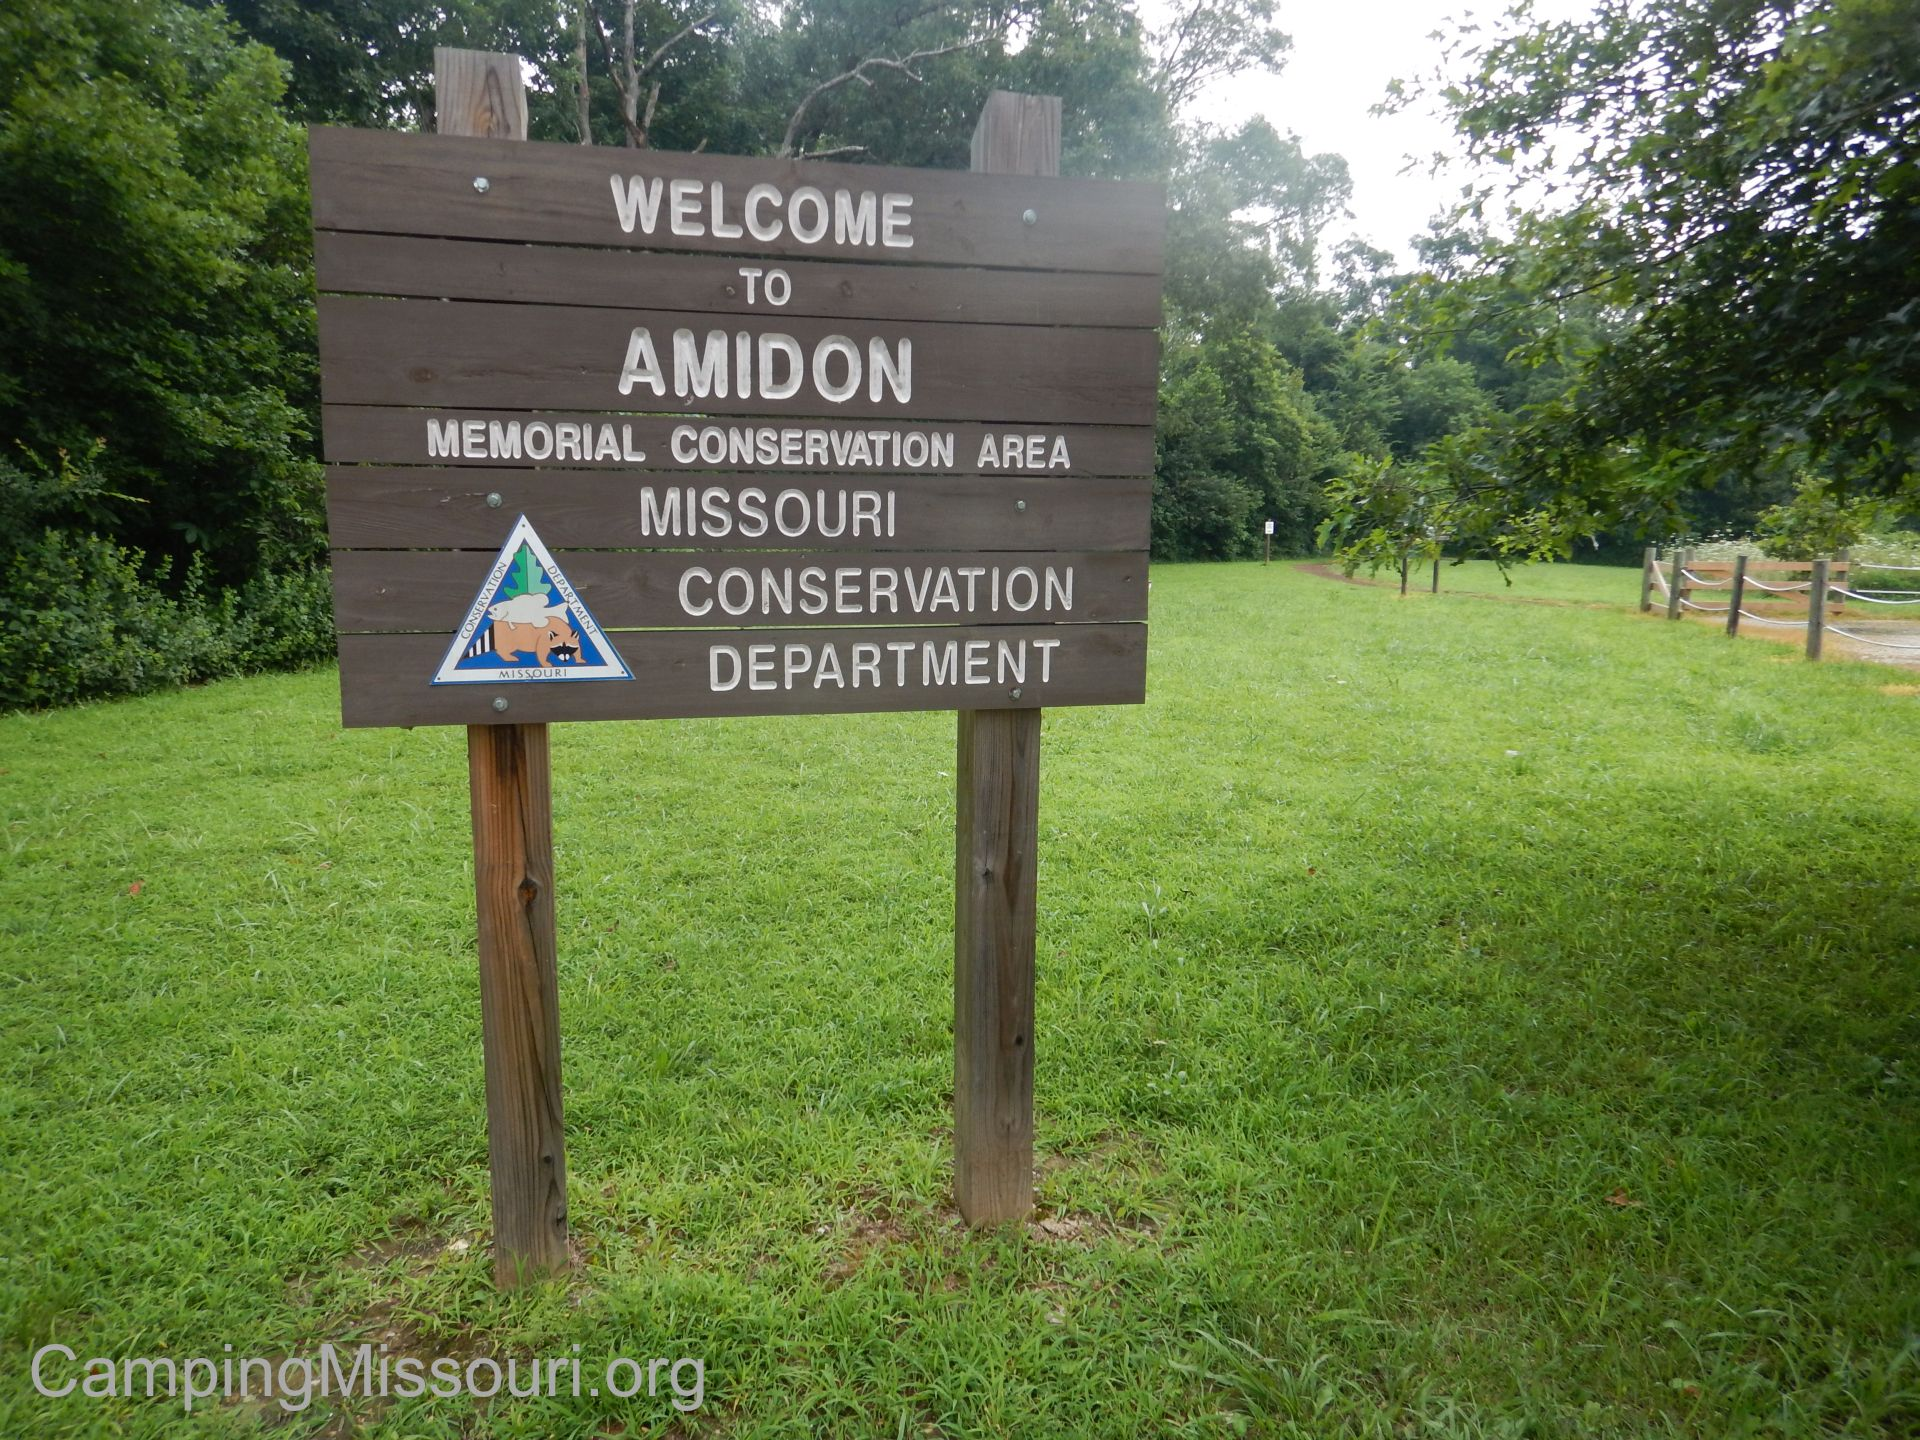 Oo Shut Up The Castor River Shut-ins! Amidon Memorial Conservation